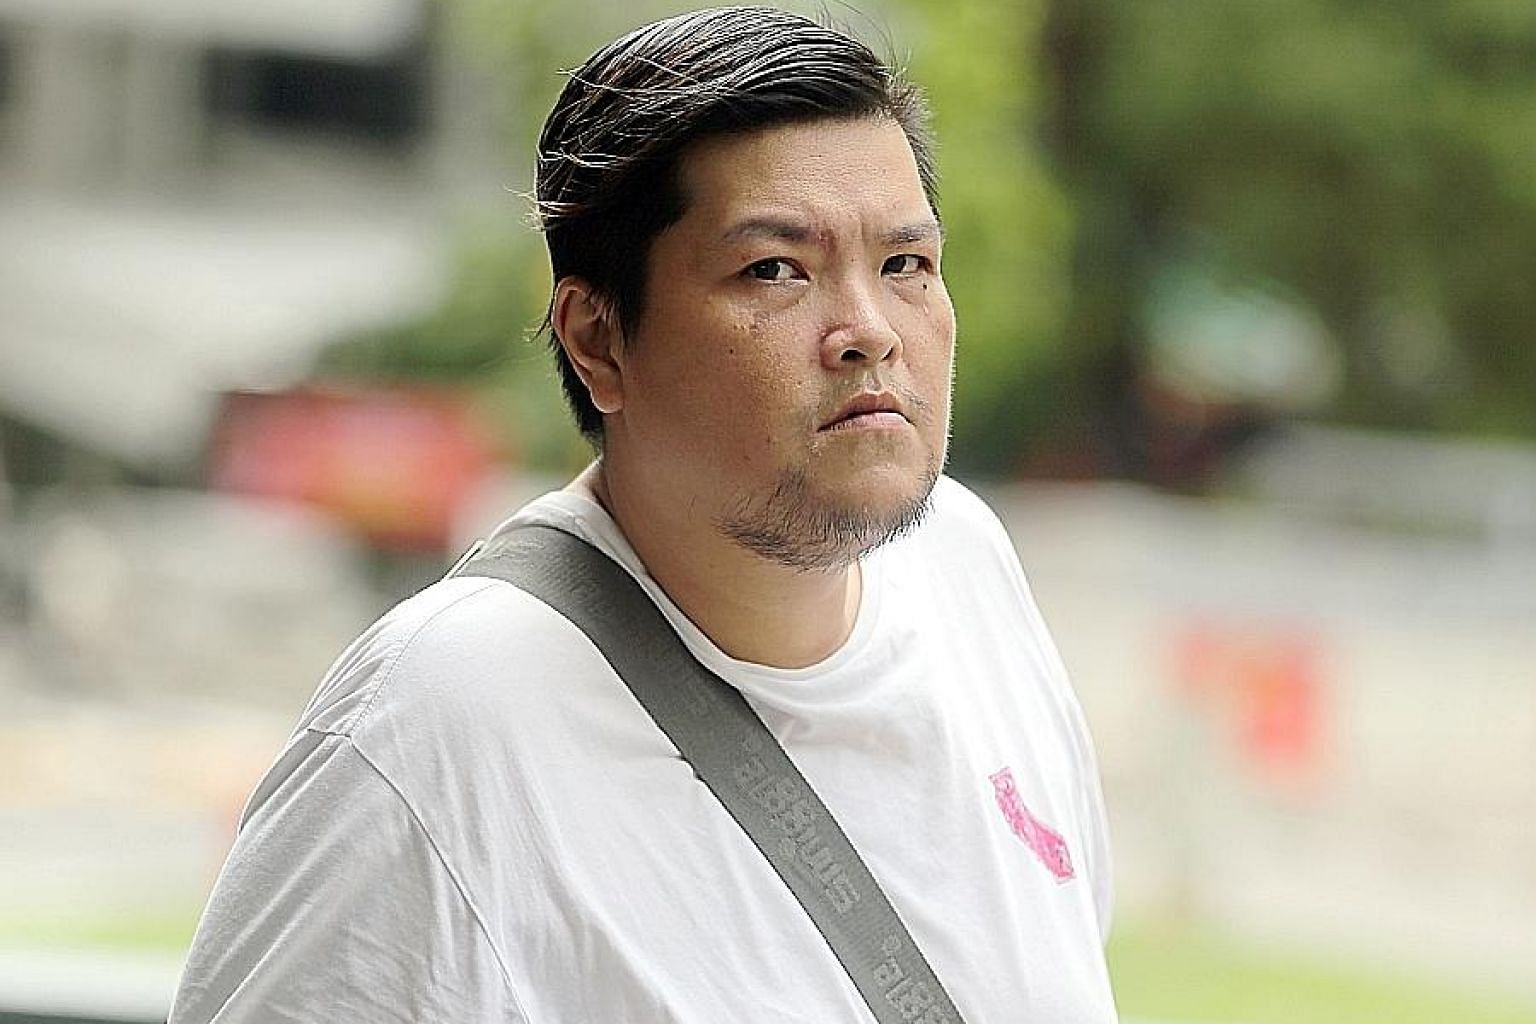 Chong Choom Kiat, who was diagnosed with adjustment disorder with depressed mood, was yesterday ordered to undergo 12 months of mandatory treatment. He was also banned from owning any animal for a year.